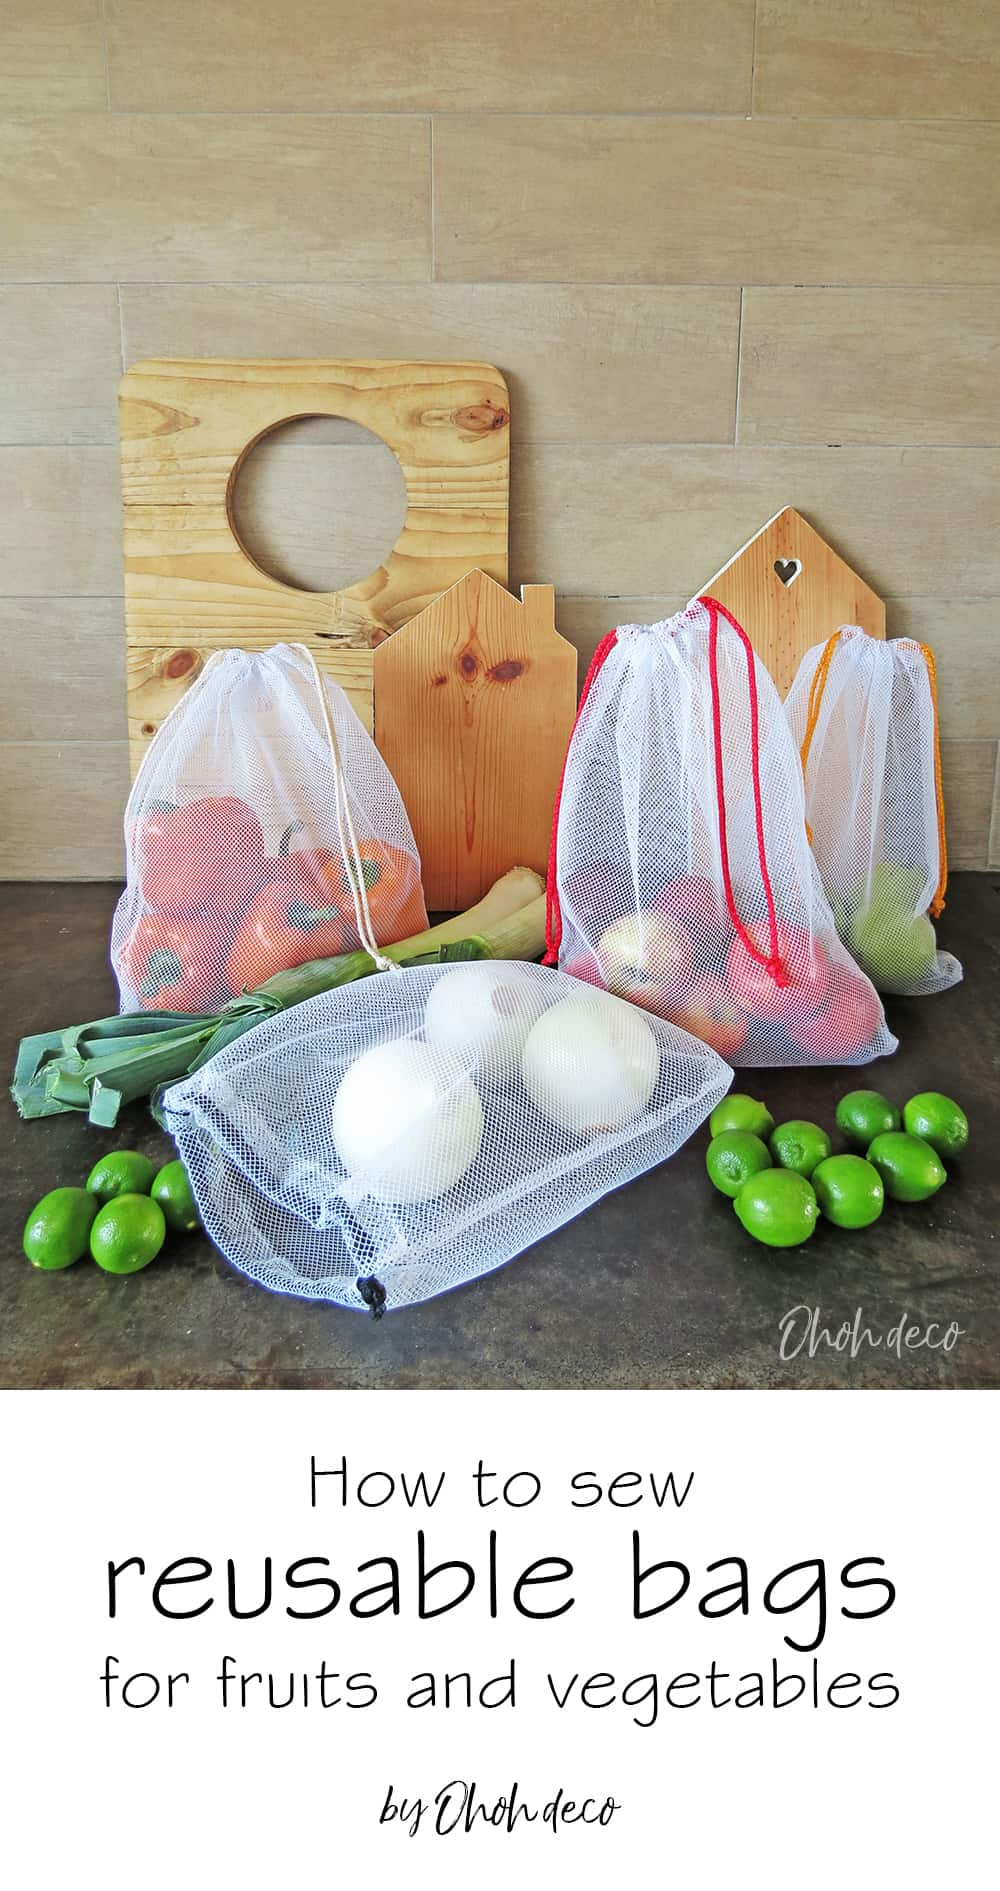 How to sew reusable fabric bags #fabricbag #sewingtutorial #sustainable #green